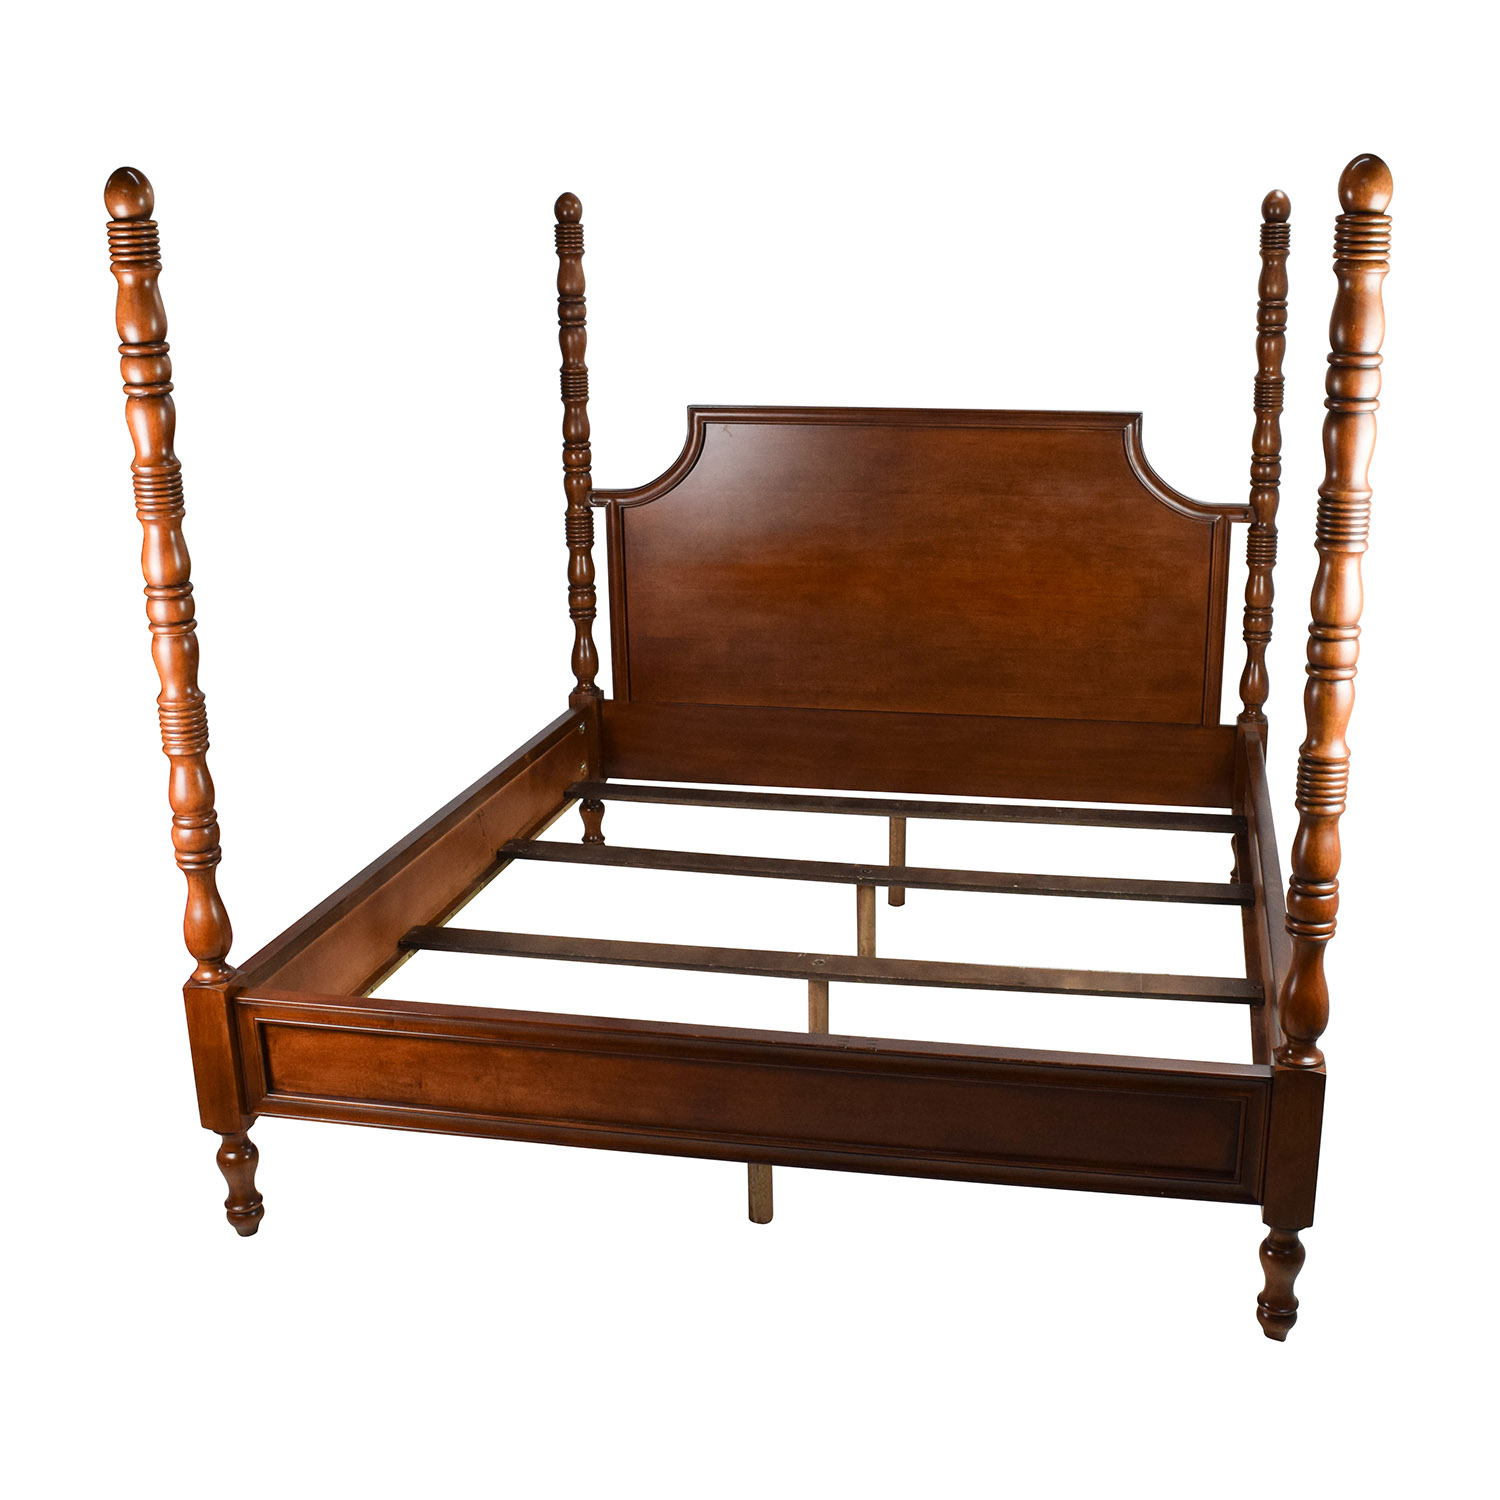 Thomasville Furniture Thomasville King Size Poster Bed dimensions